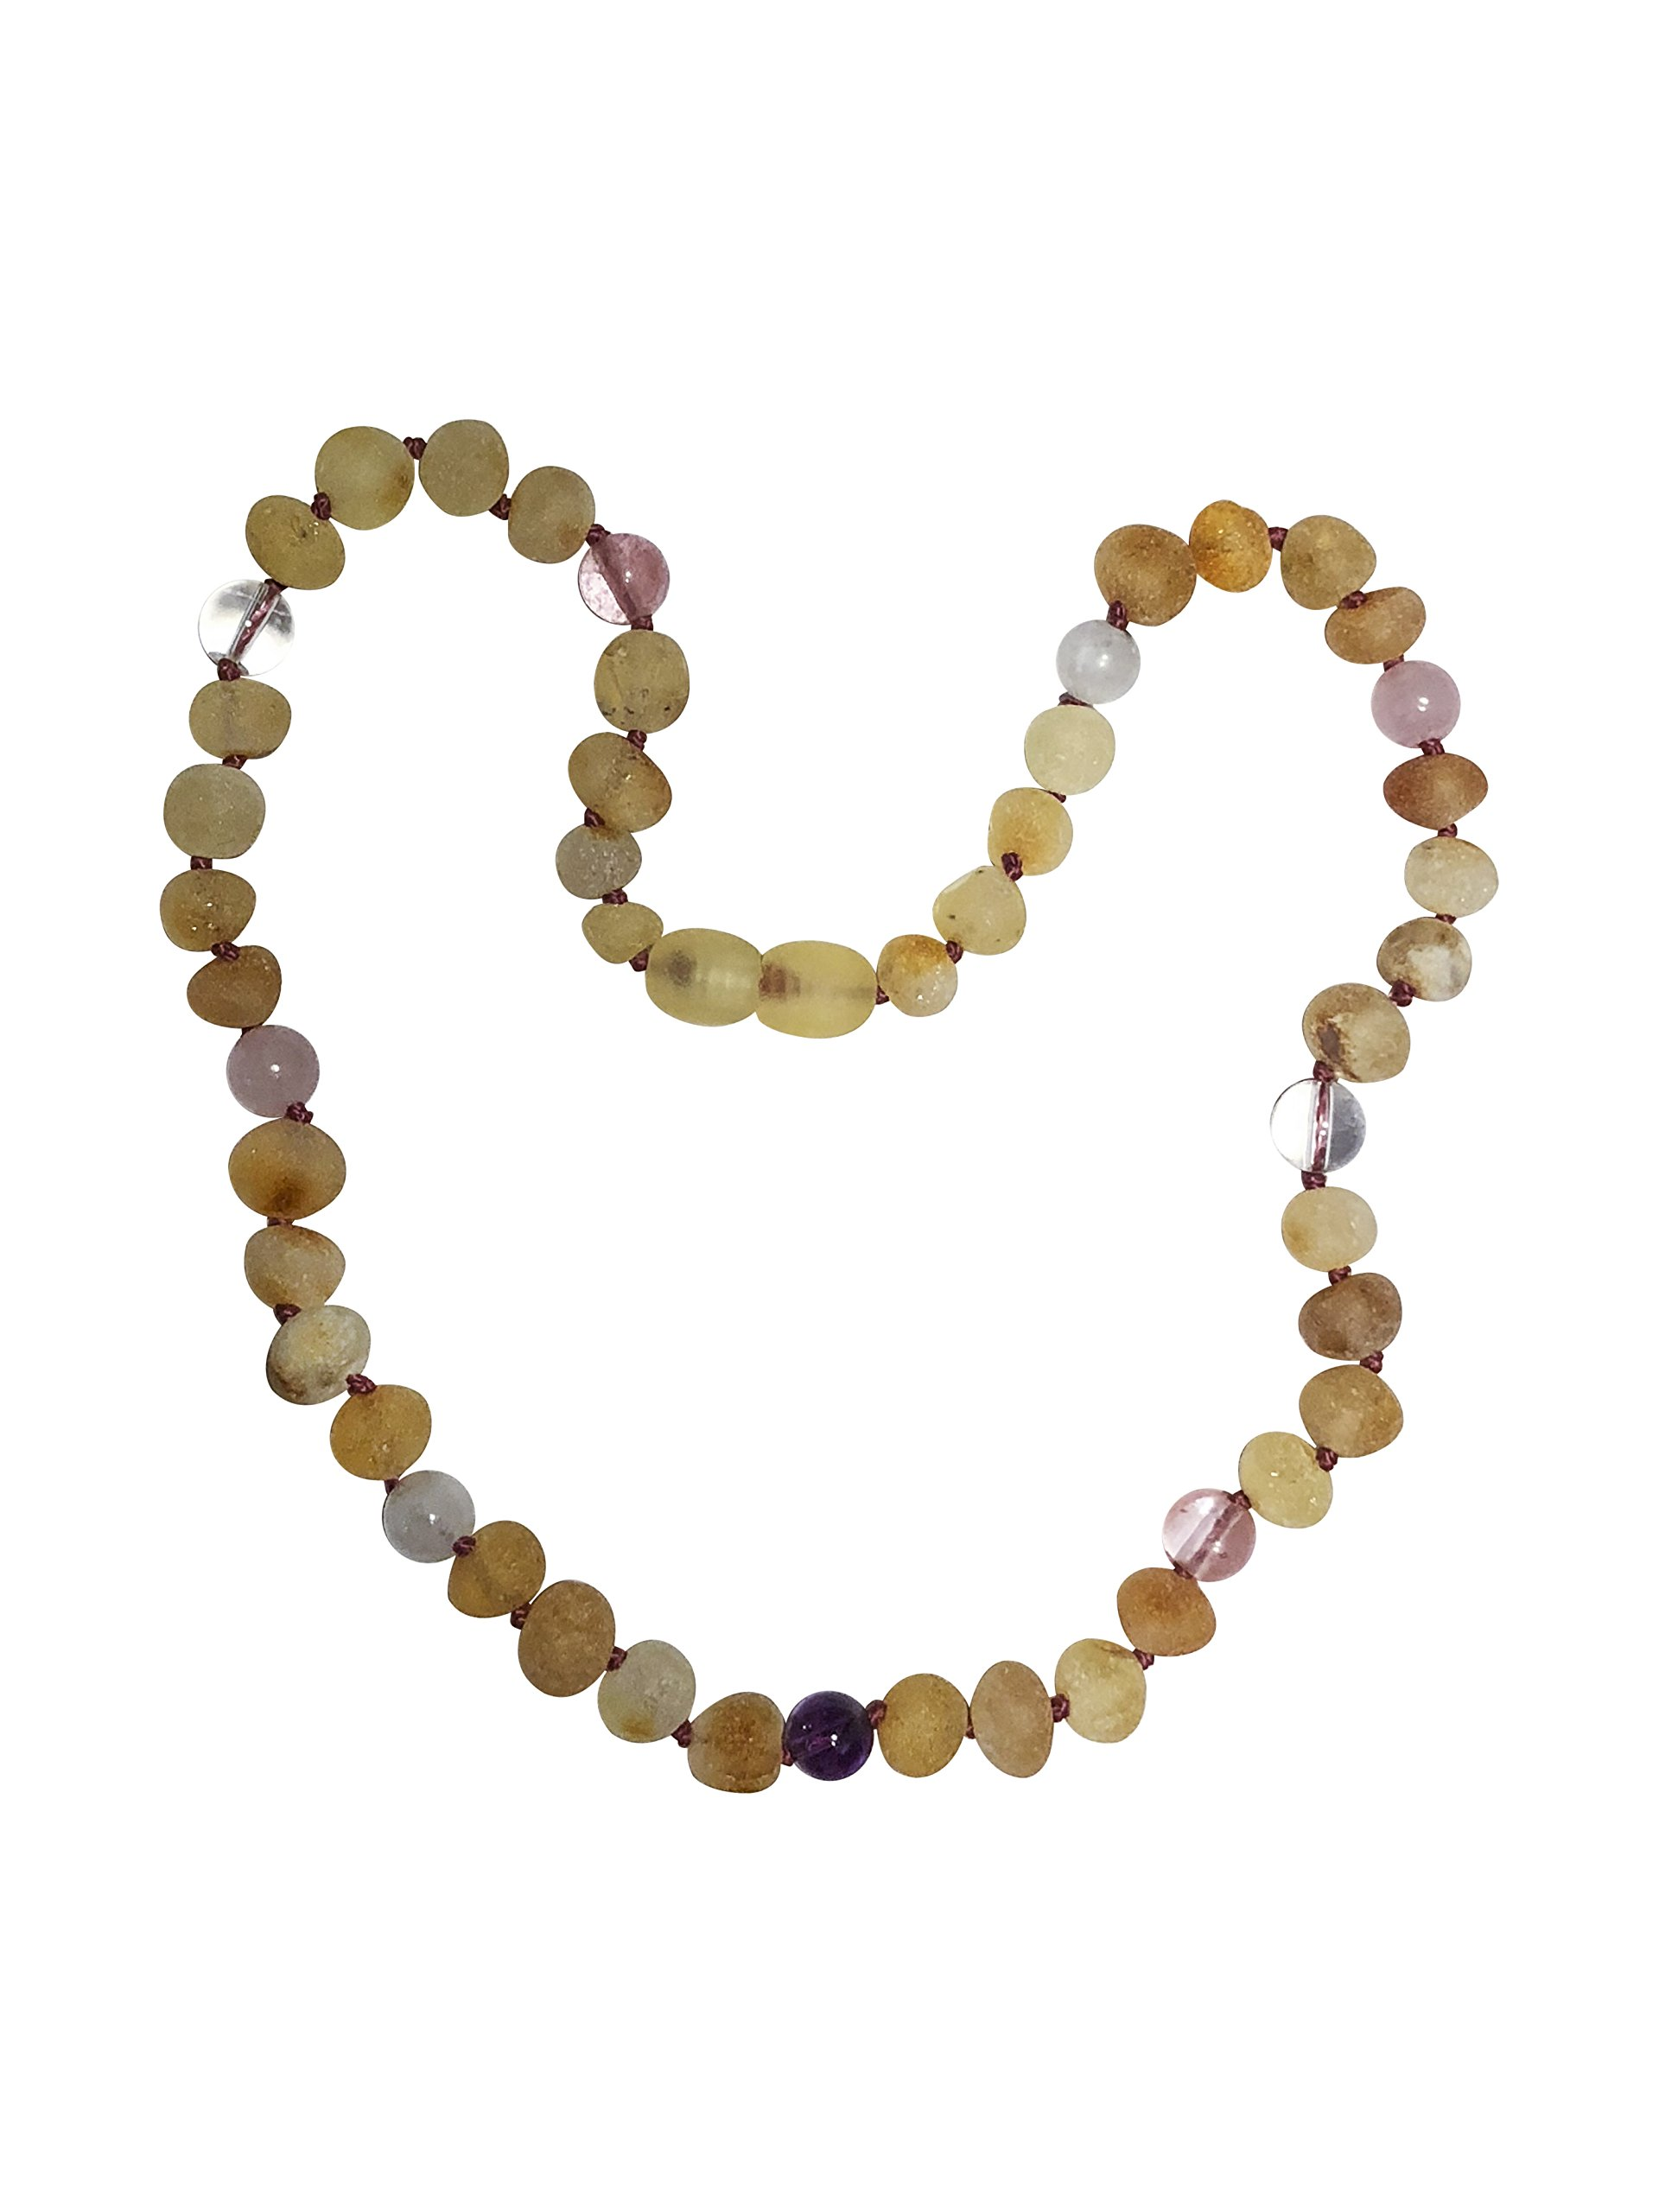 Baltic Amber Necklace for Kids- 15 inch- Immune System Boost - Positivity and Focus. for Children Ages 4-15 (Pink/Purple)